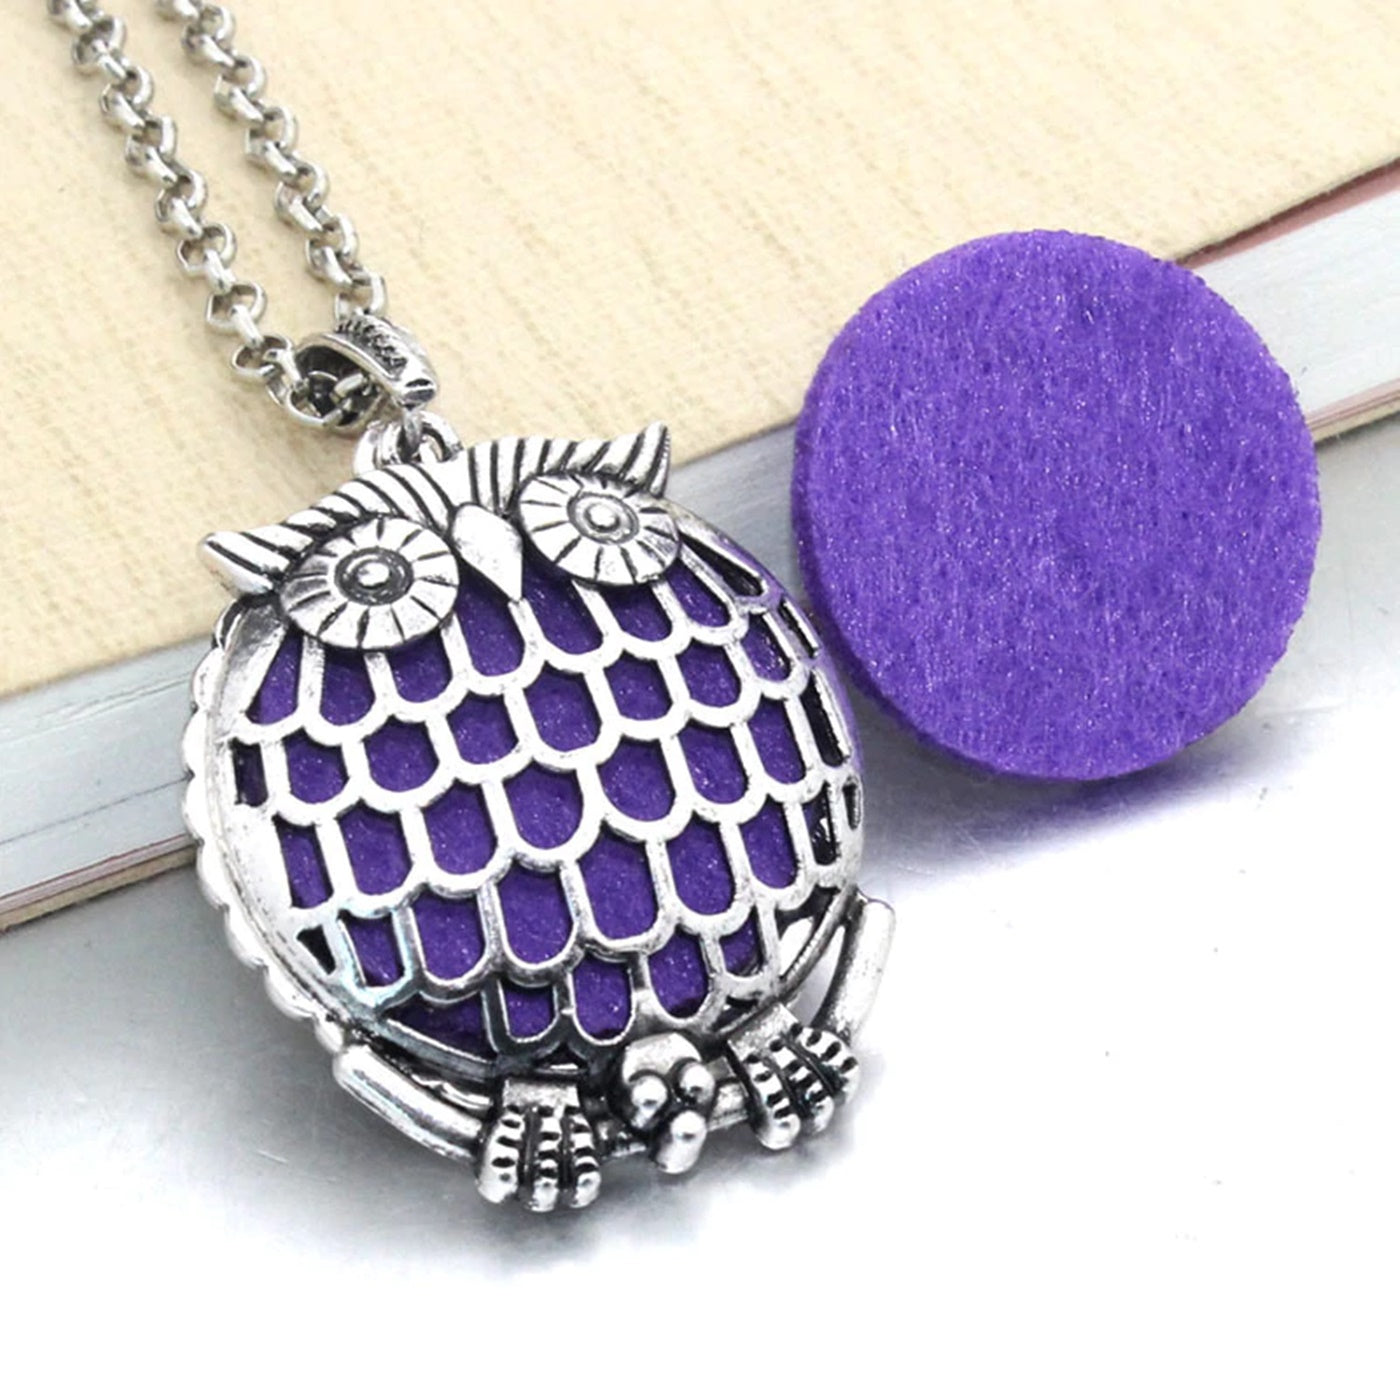 Puffy Owl Aromatherapy Diffuser Necklace